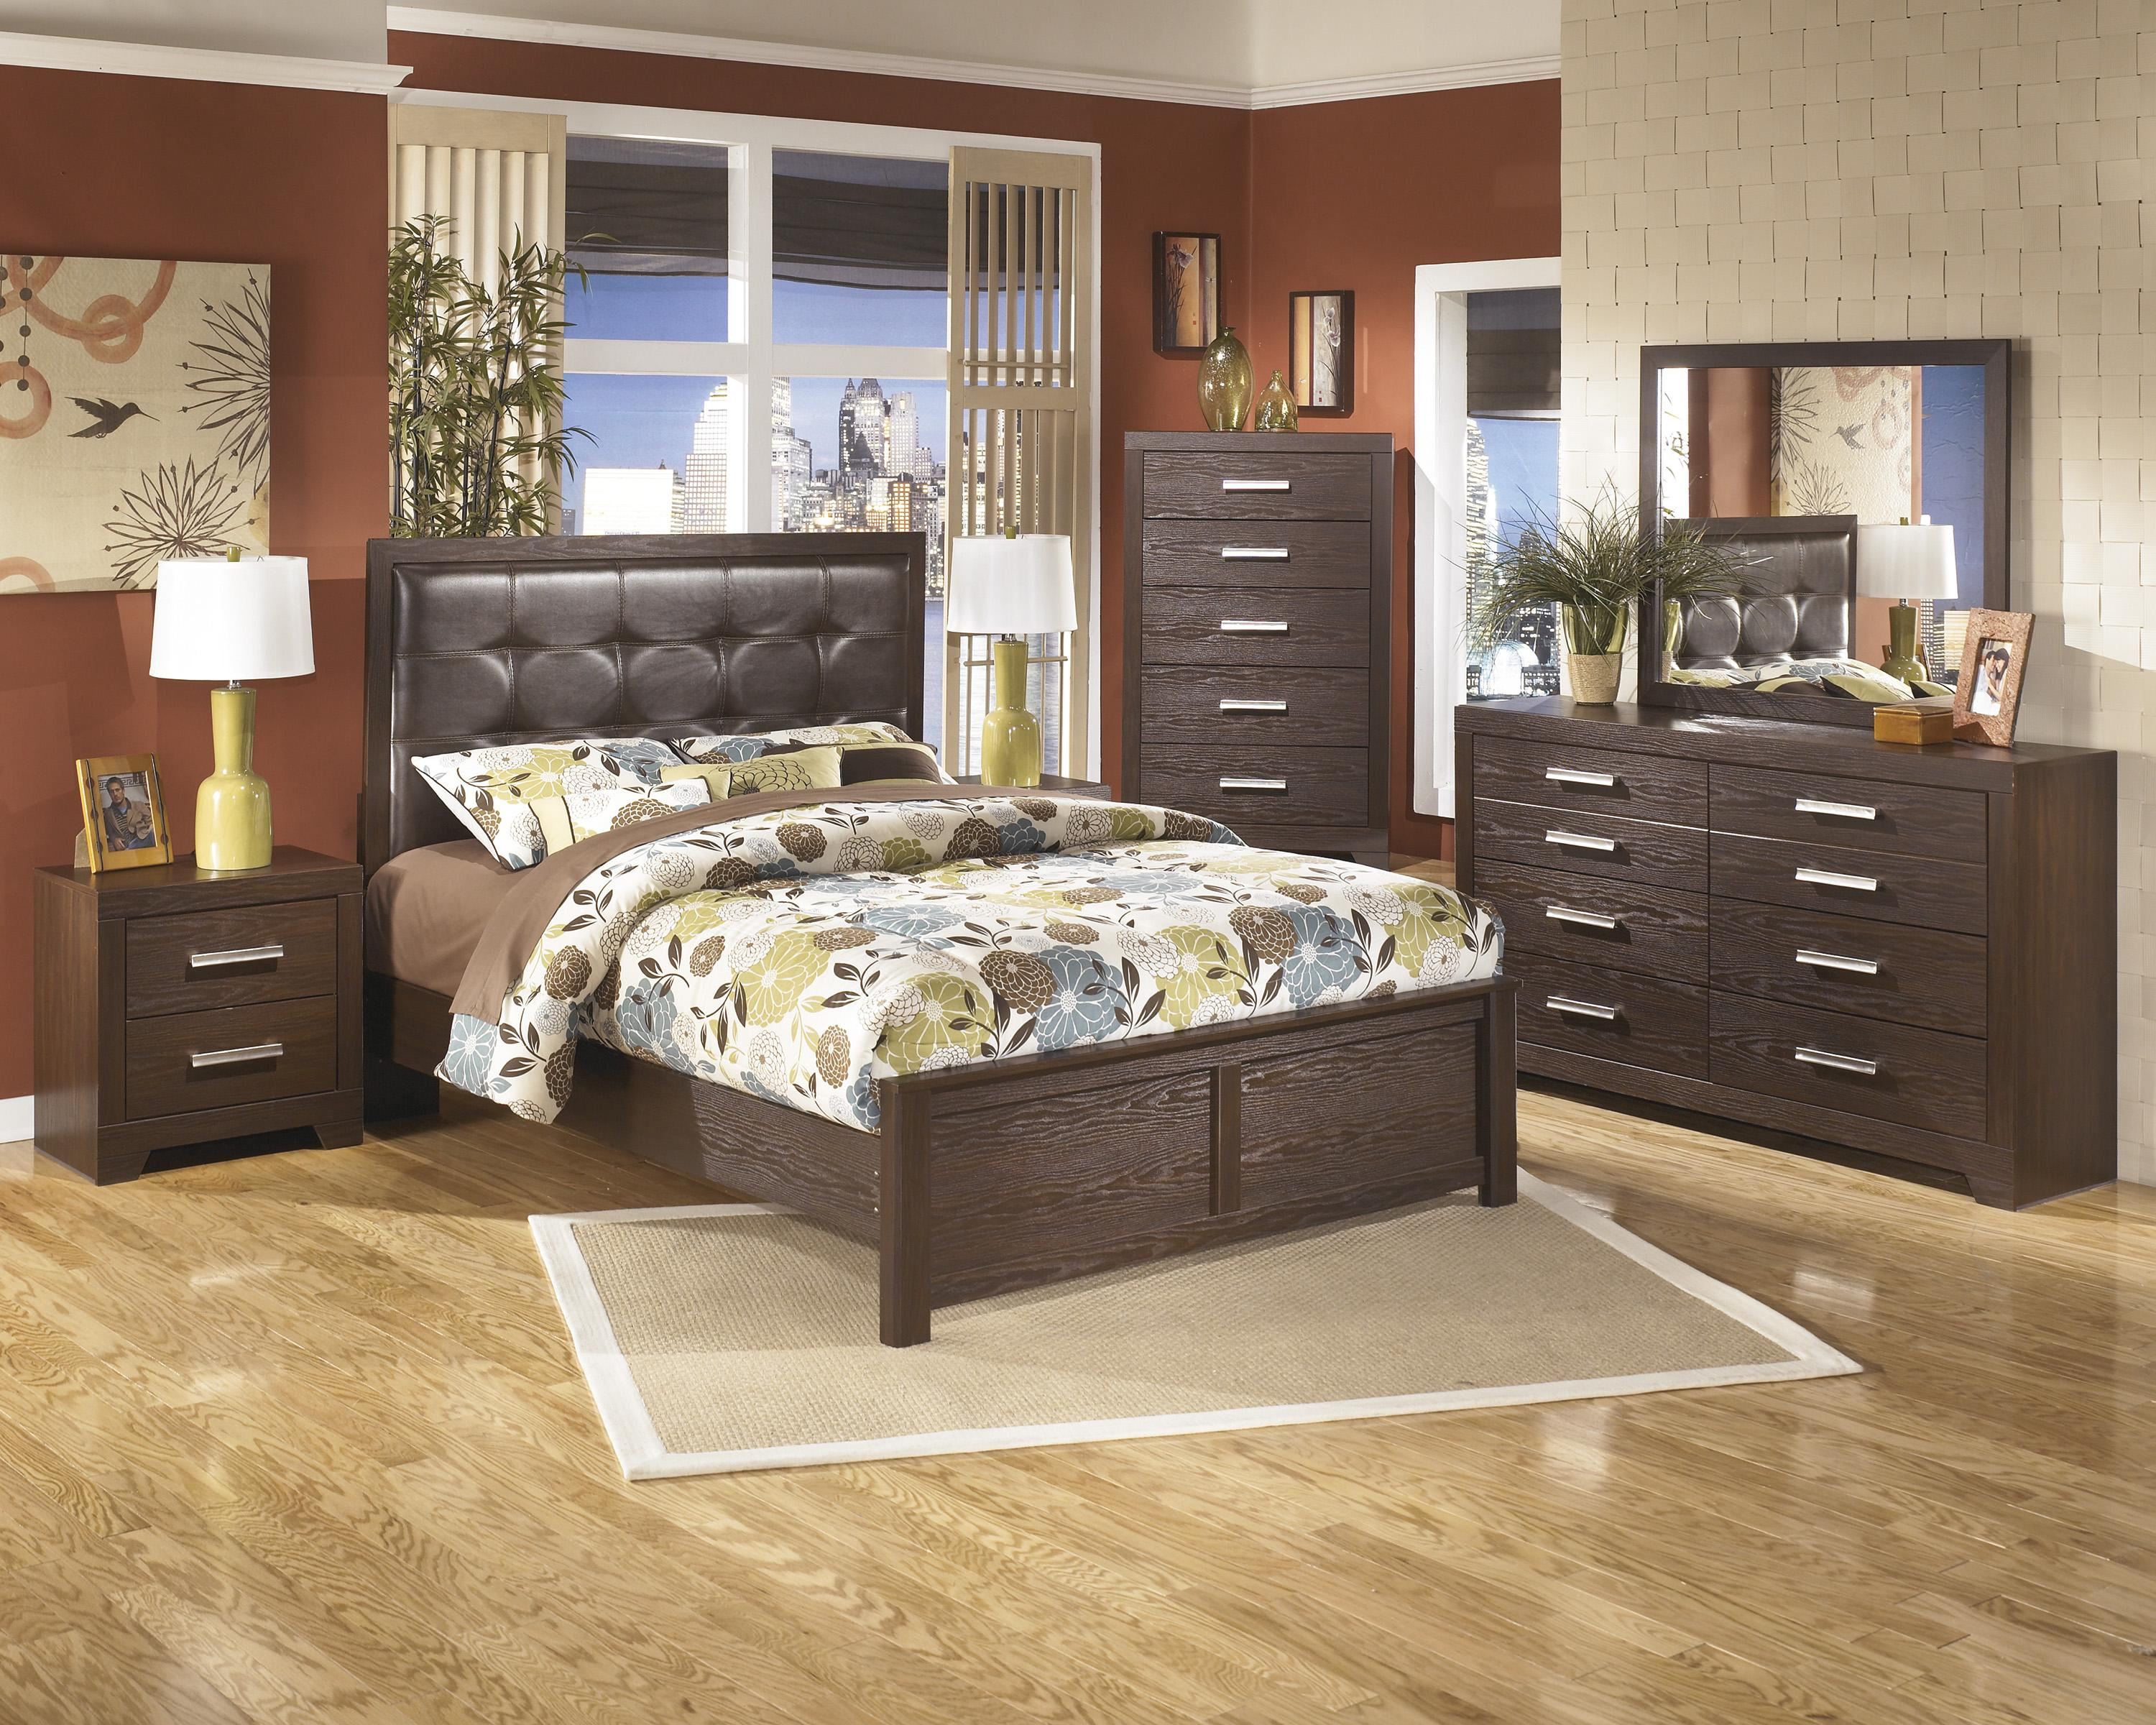 Signature Design by Ashley Aleydis Queen Bedroom Group - Item Number: B165 Q Bedroom Group 3